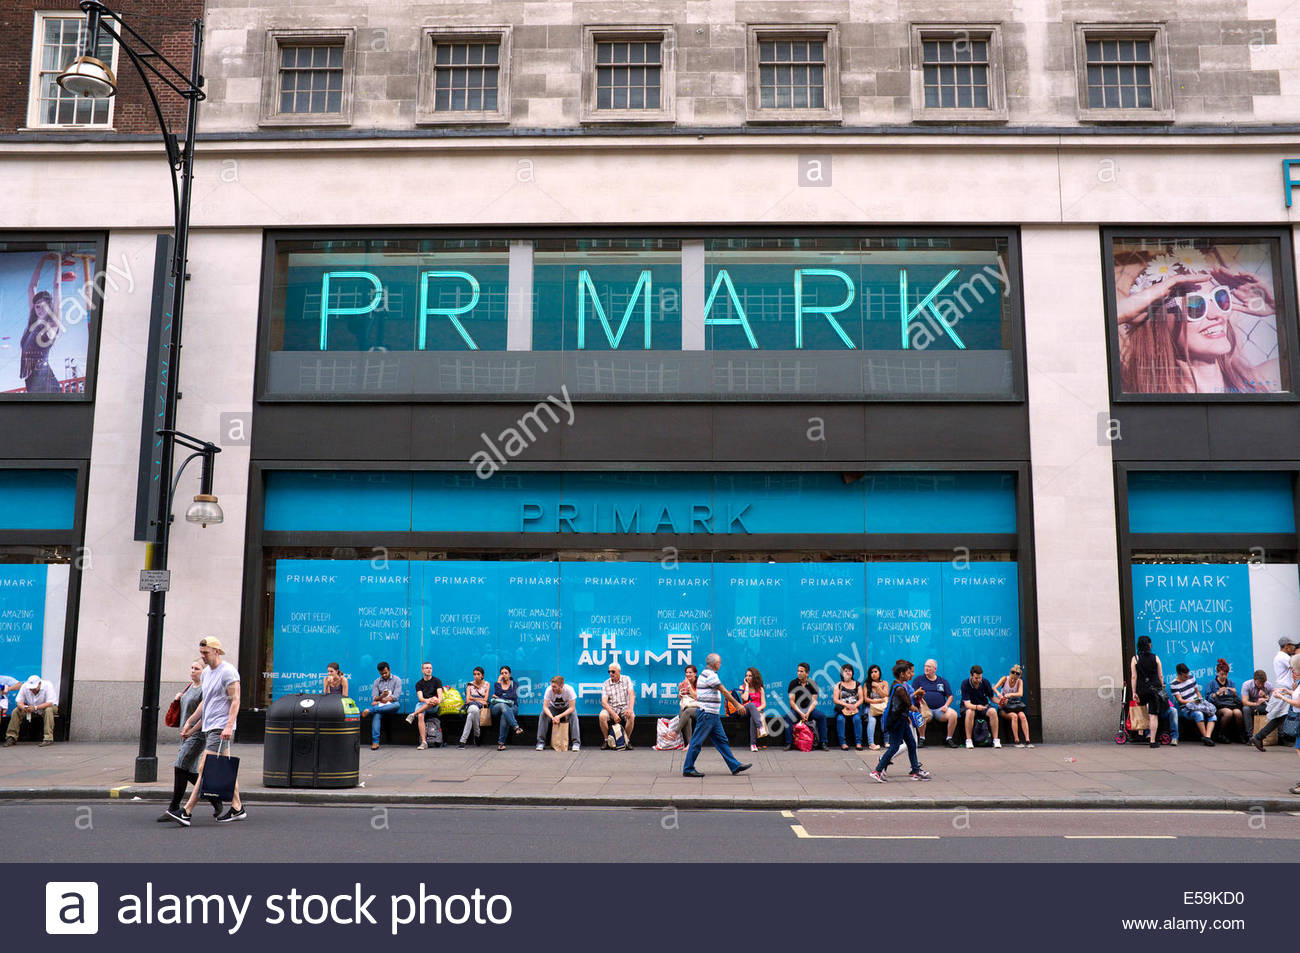 Shoppers rest on the window ledge of the Primark retail store in Oxford Street, London, UK. - Stock Image